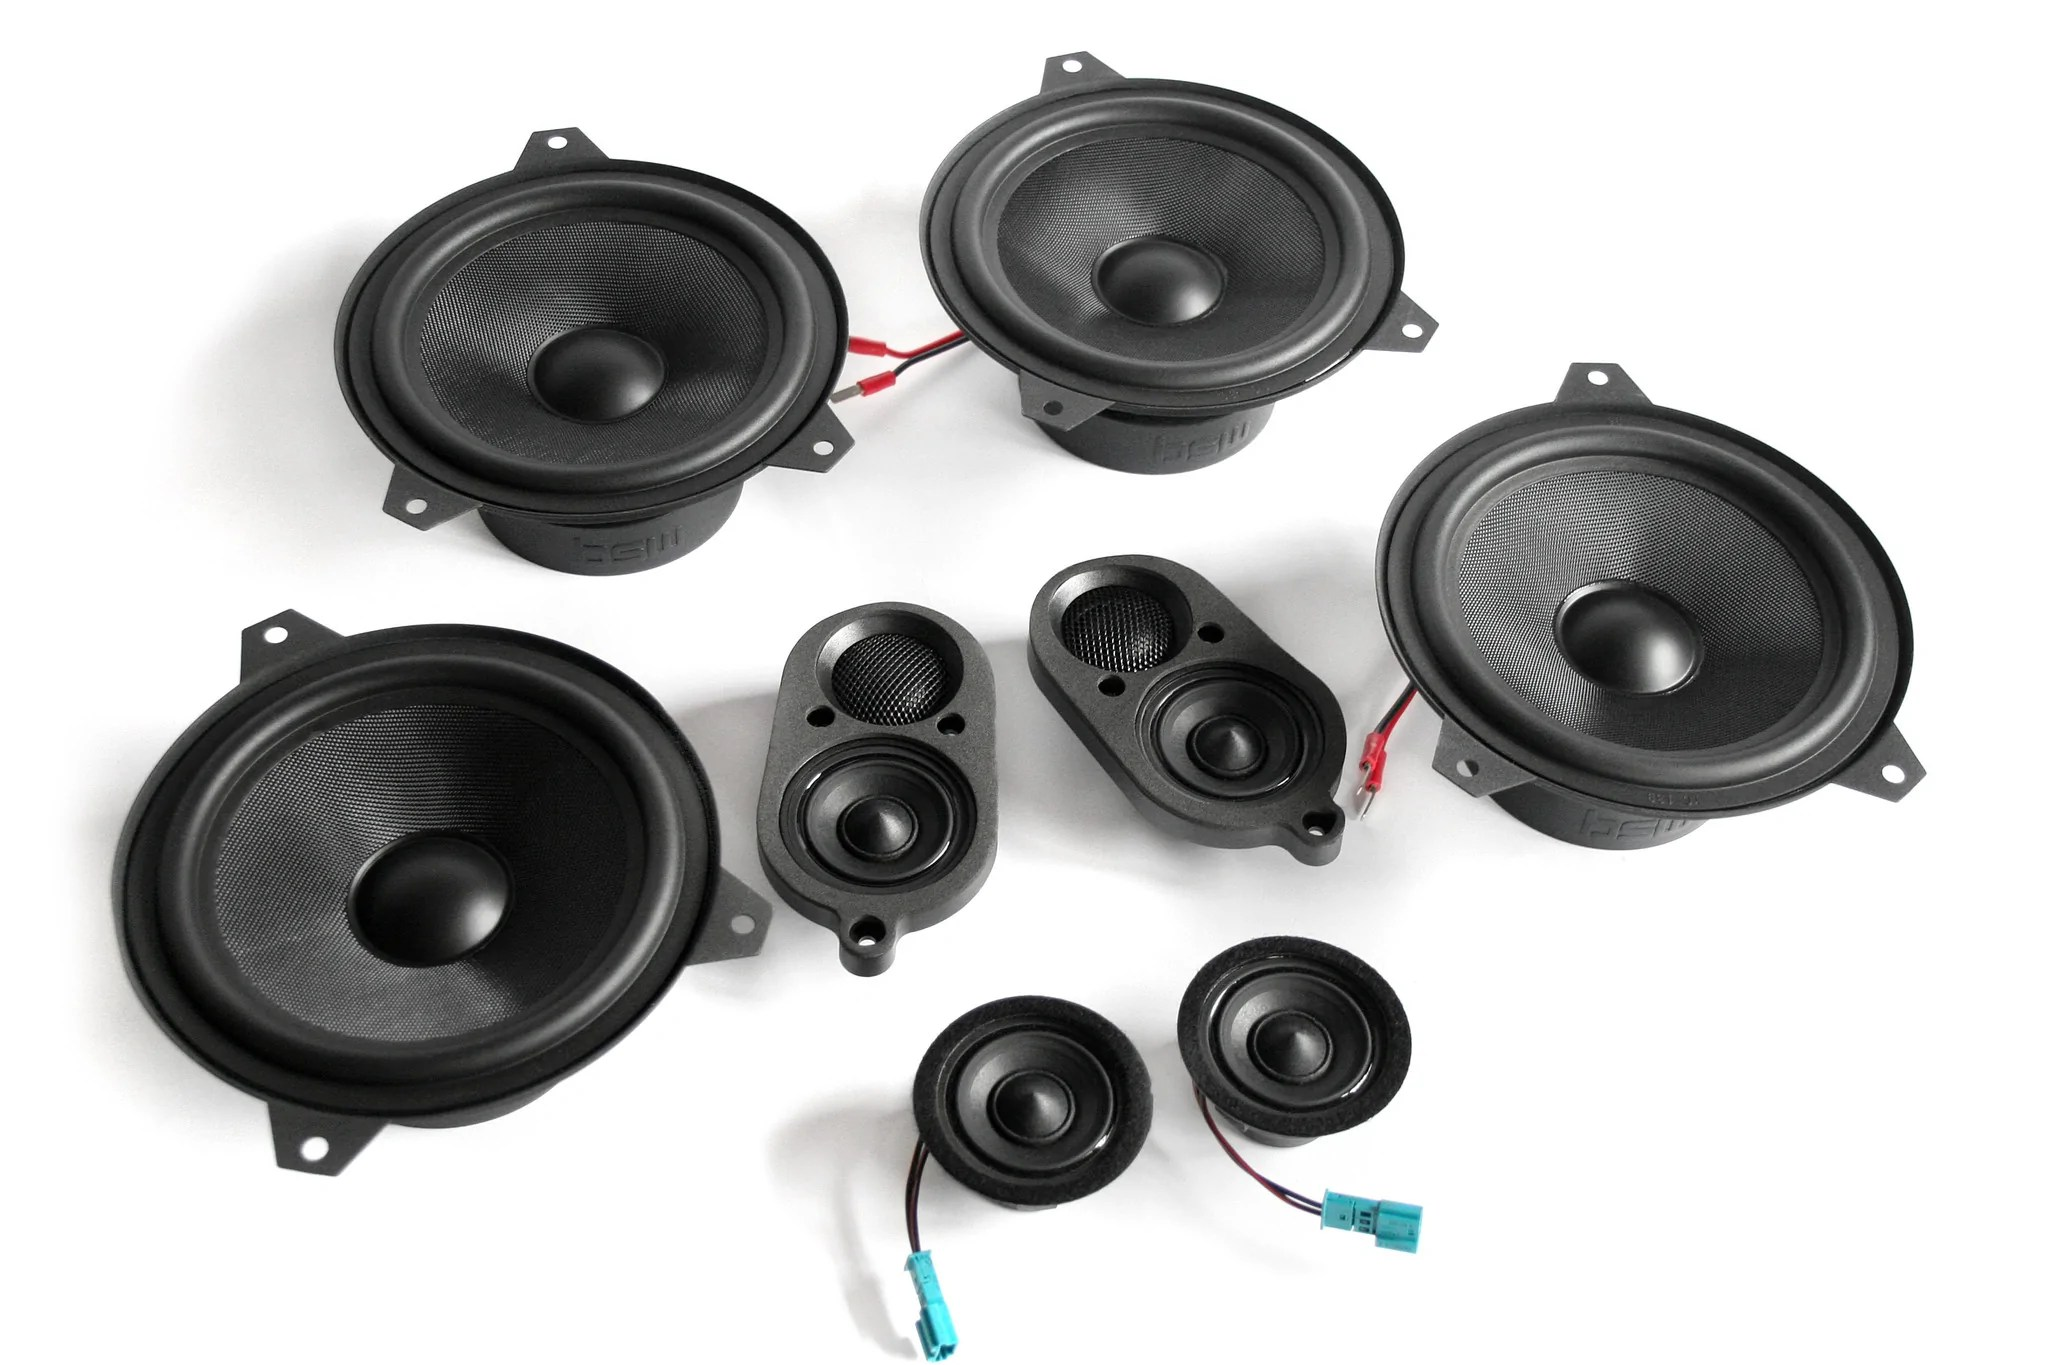 stage one bmw speaker upgrade for e46 coupe with standard hi fi [ 2048 x 1365 Pixel ]